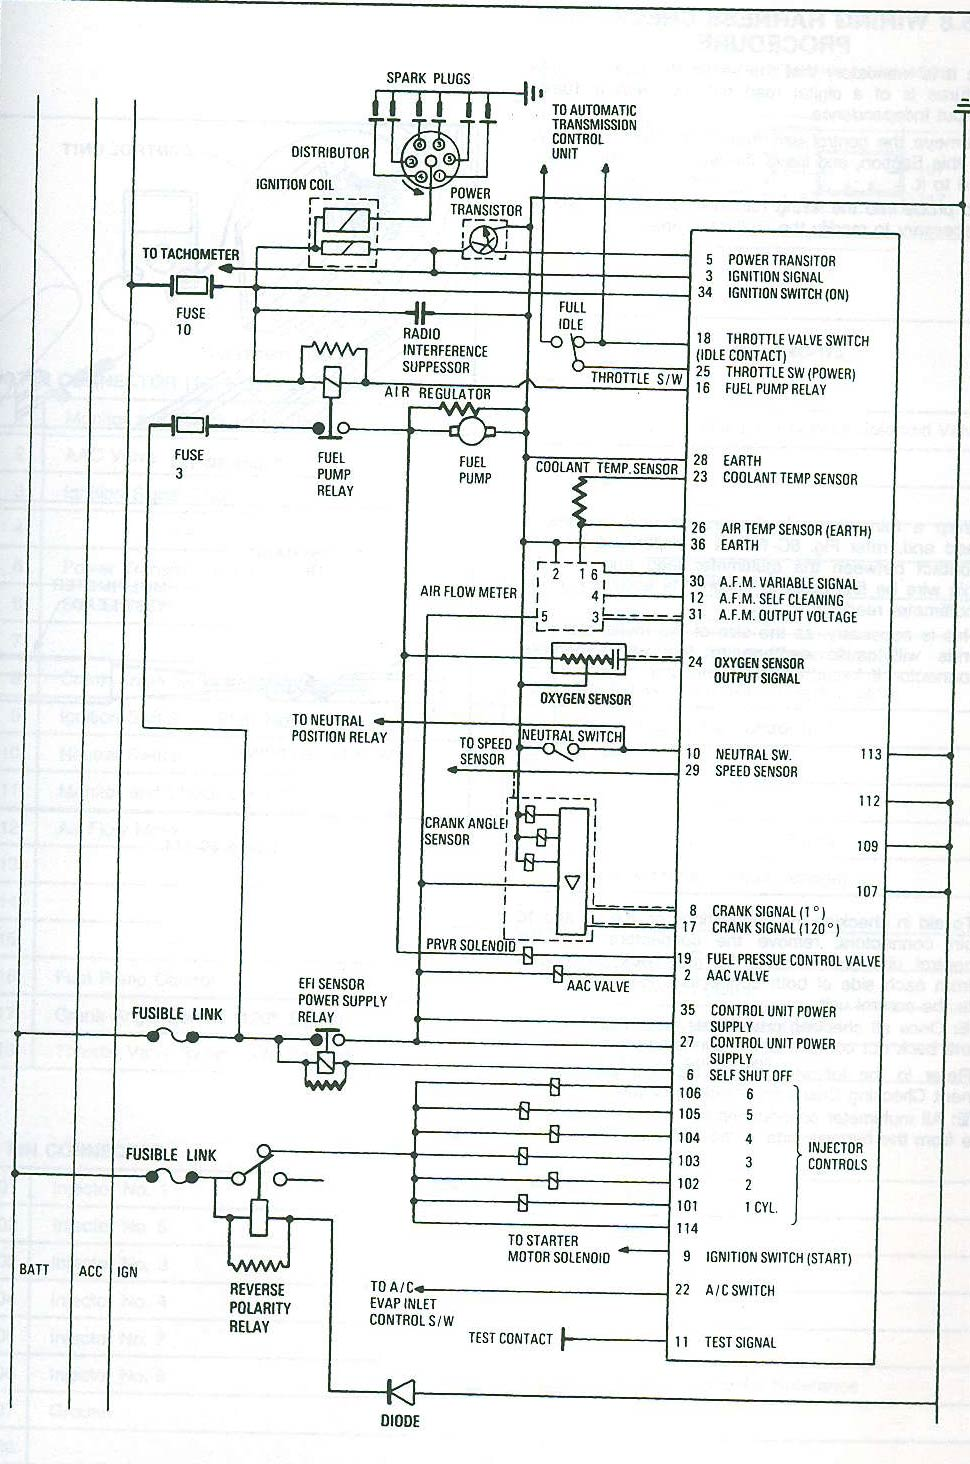 hight resolution of suzuki jimny ecu wiring diagram wiring librarysuzuki jimny ecu wiring diagram